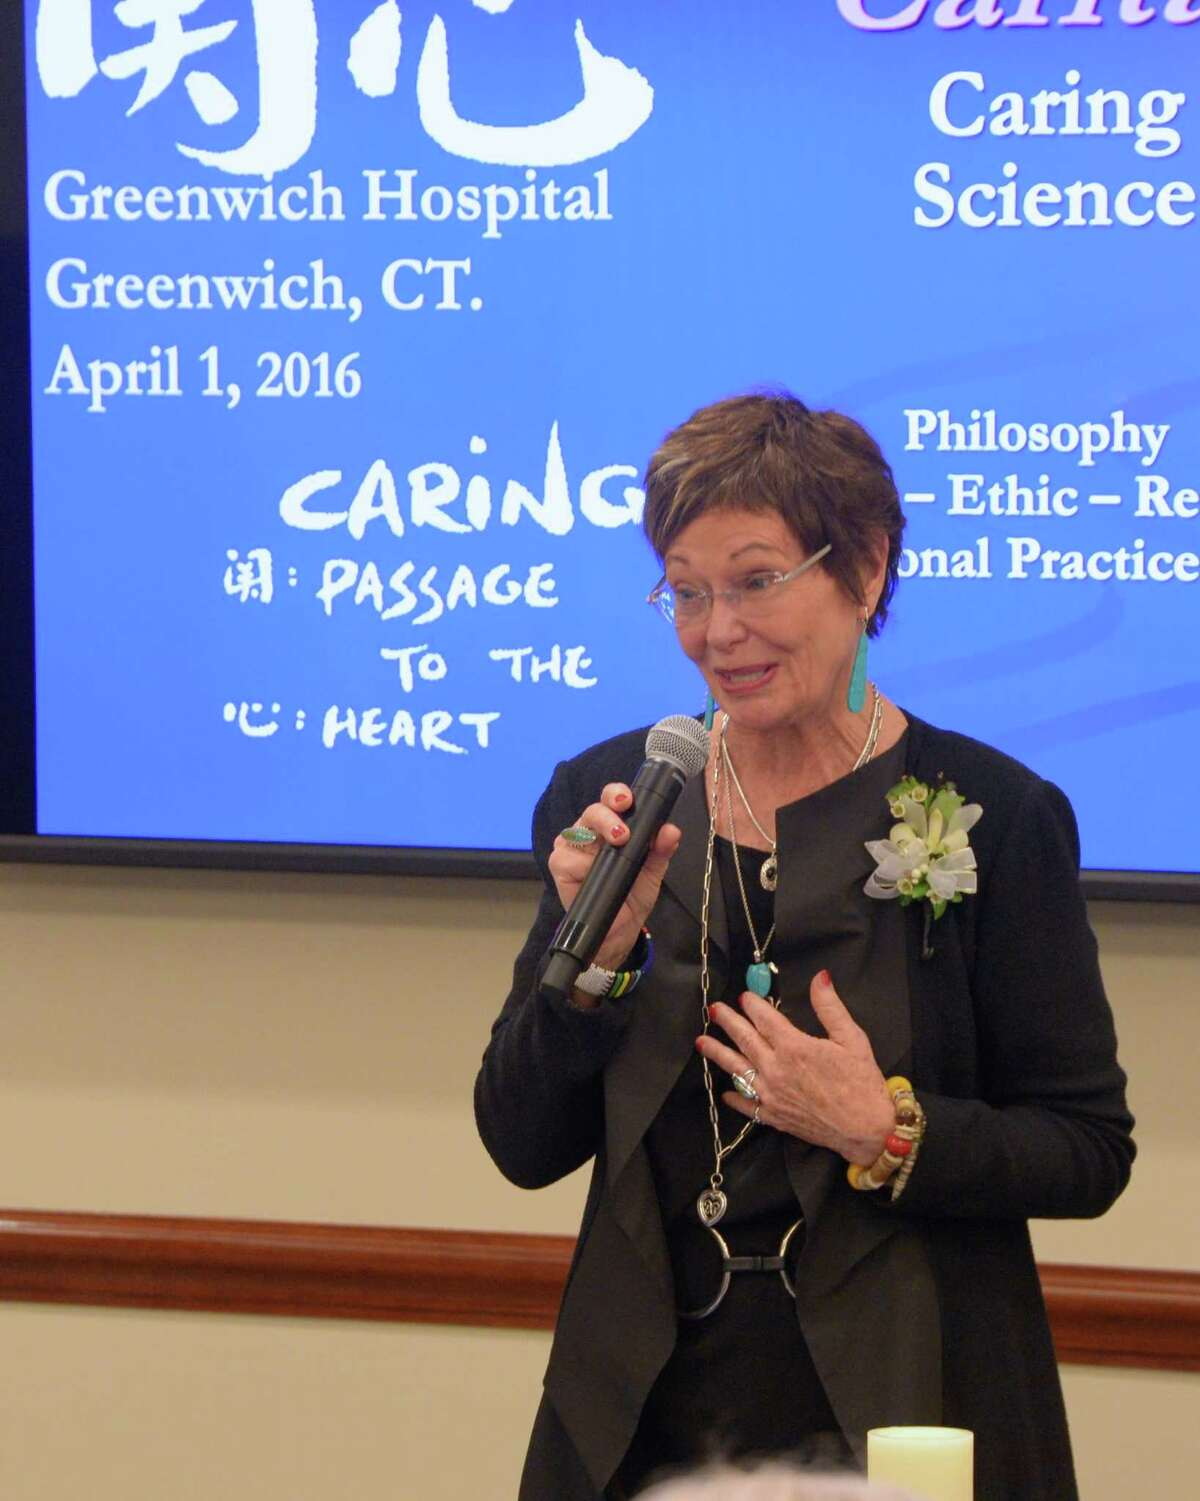 Jean Watson delivers remarks at Greenwich Hospital.